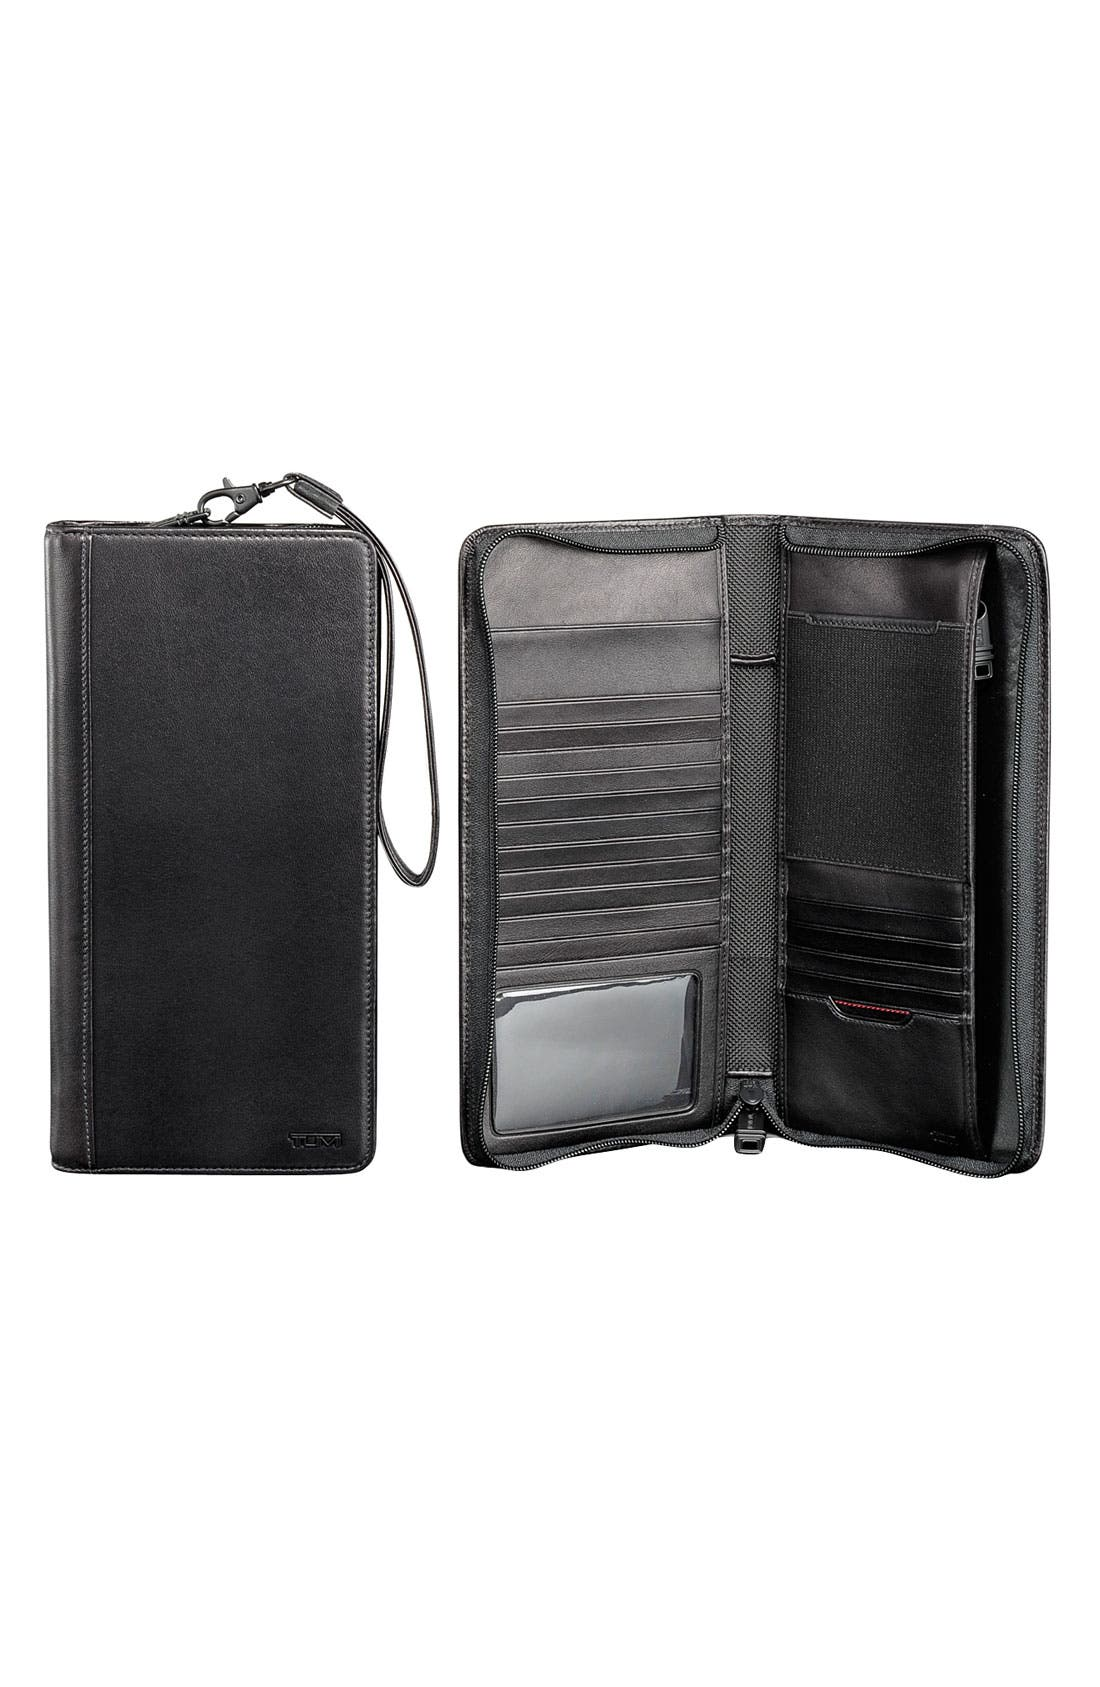 Main Image - Tumi 'Delta' Zip Travel Case